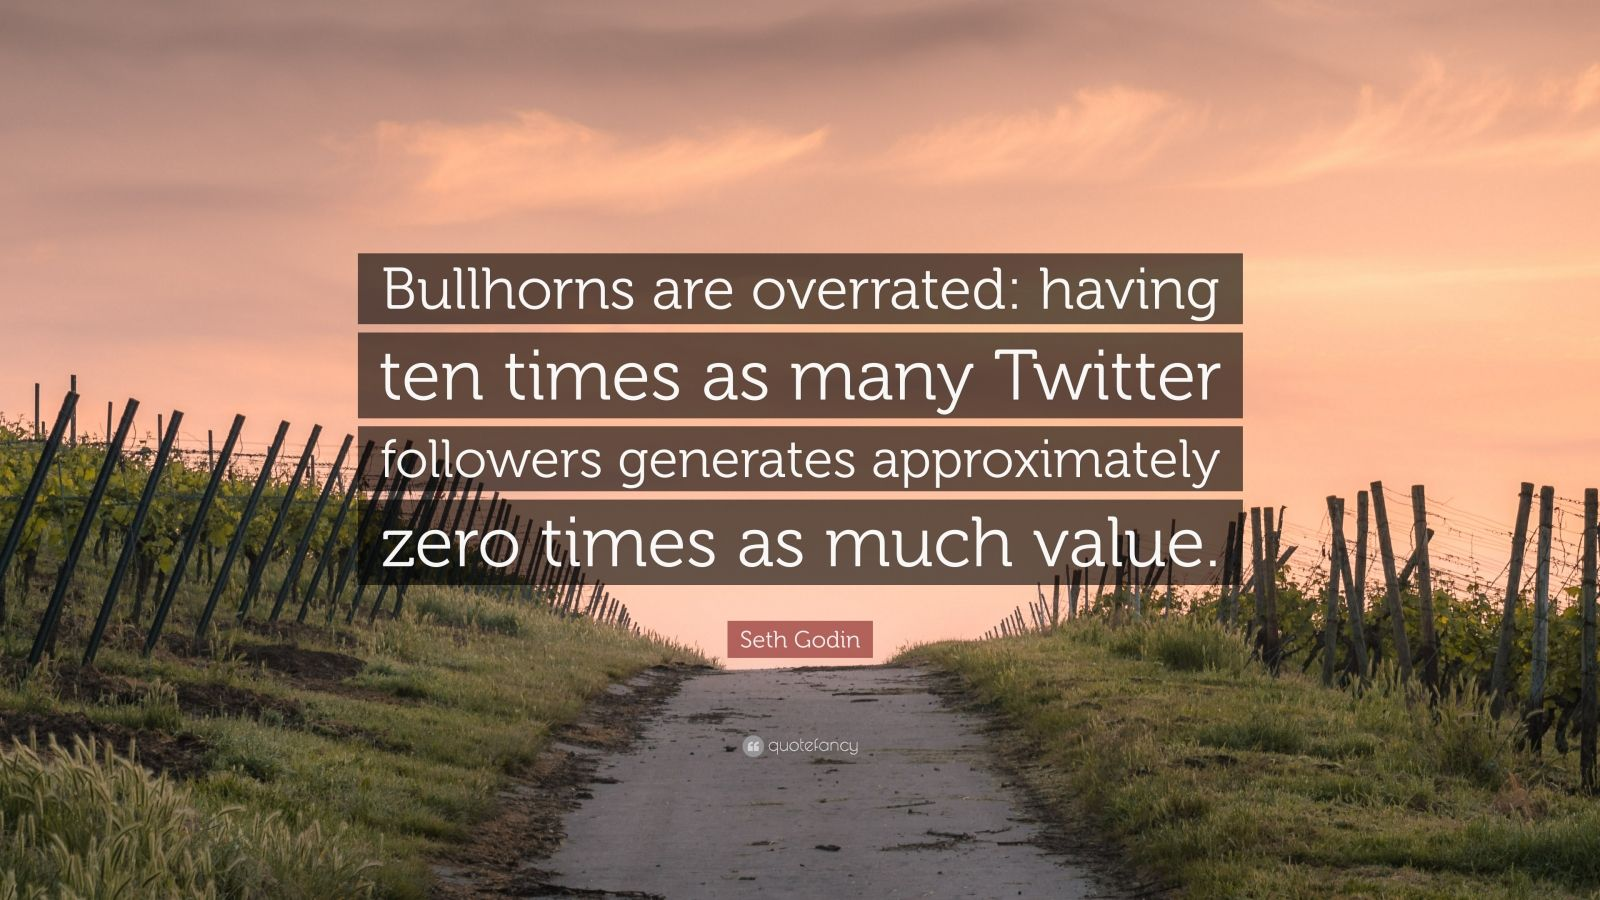 """Seth Godin Quote: """"Bullhorns are overrated: having ten times as many Twitter followers generates approximately zero times as much value."""""""